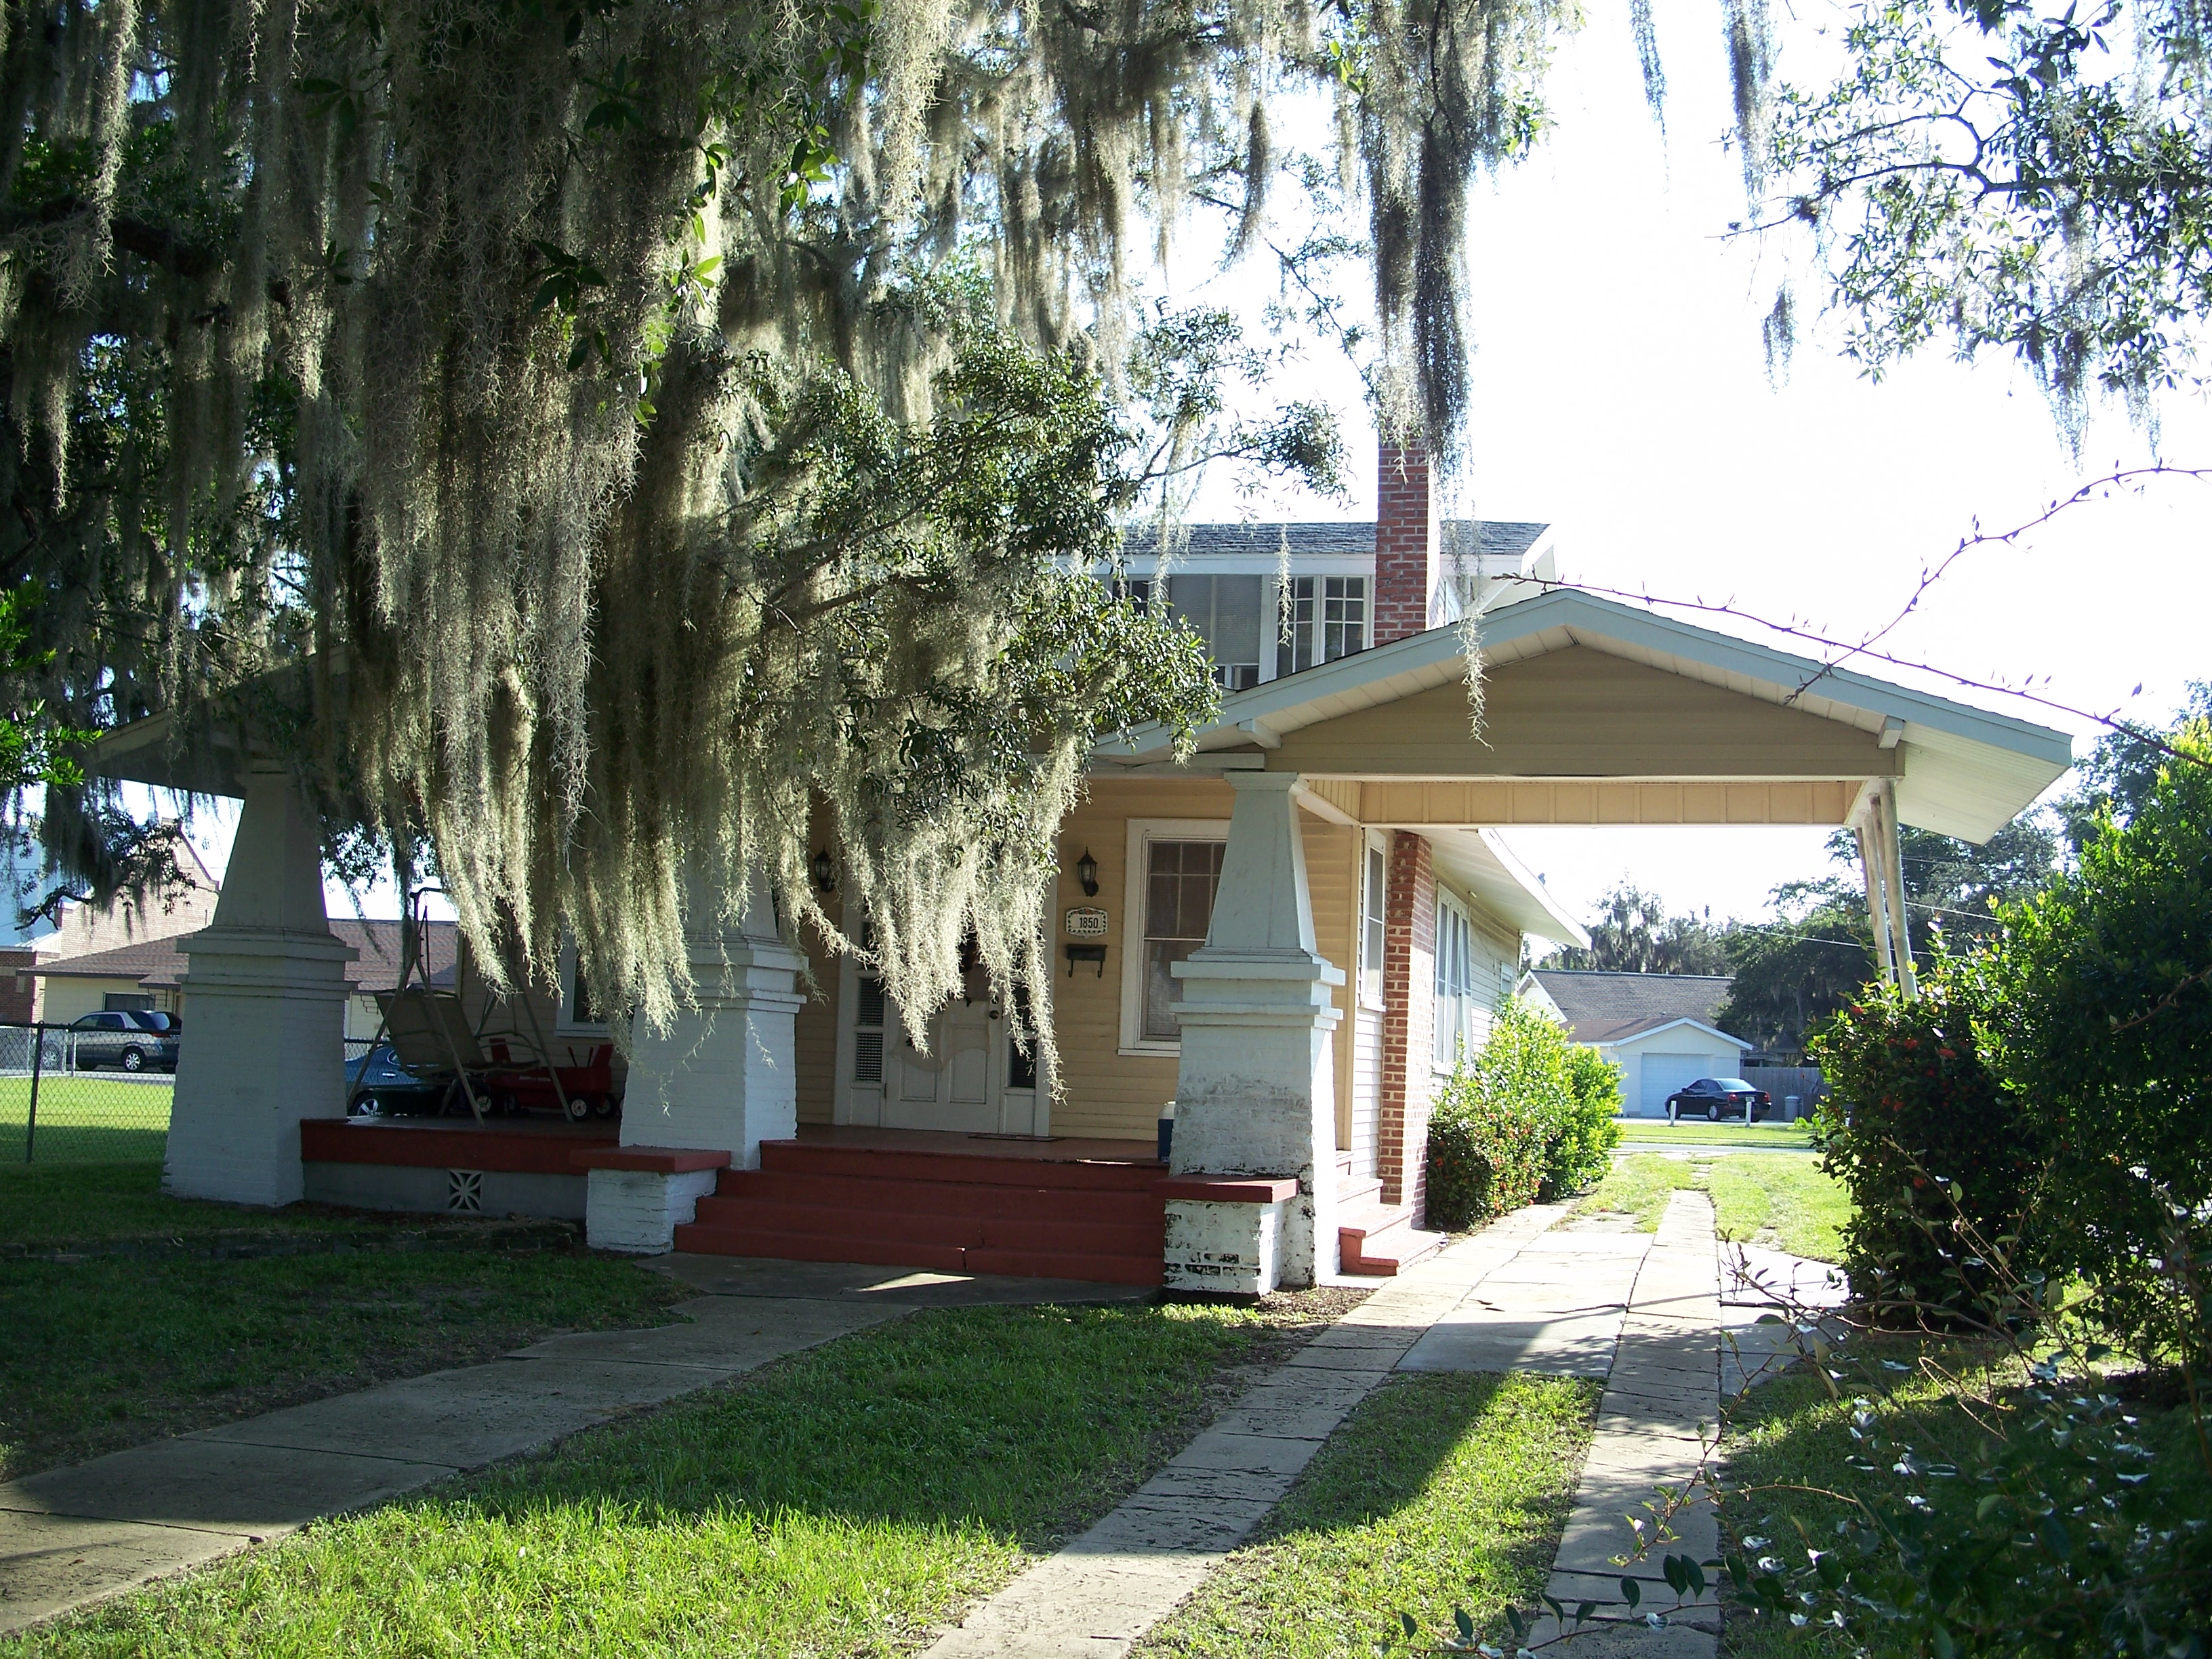 Sebring on File Sebring Fl Historic House01b Jpg   Wikimedia Commons